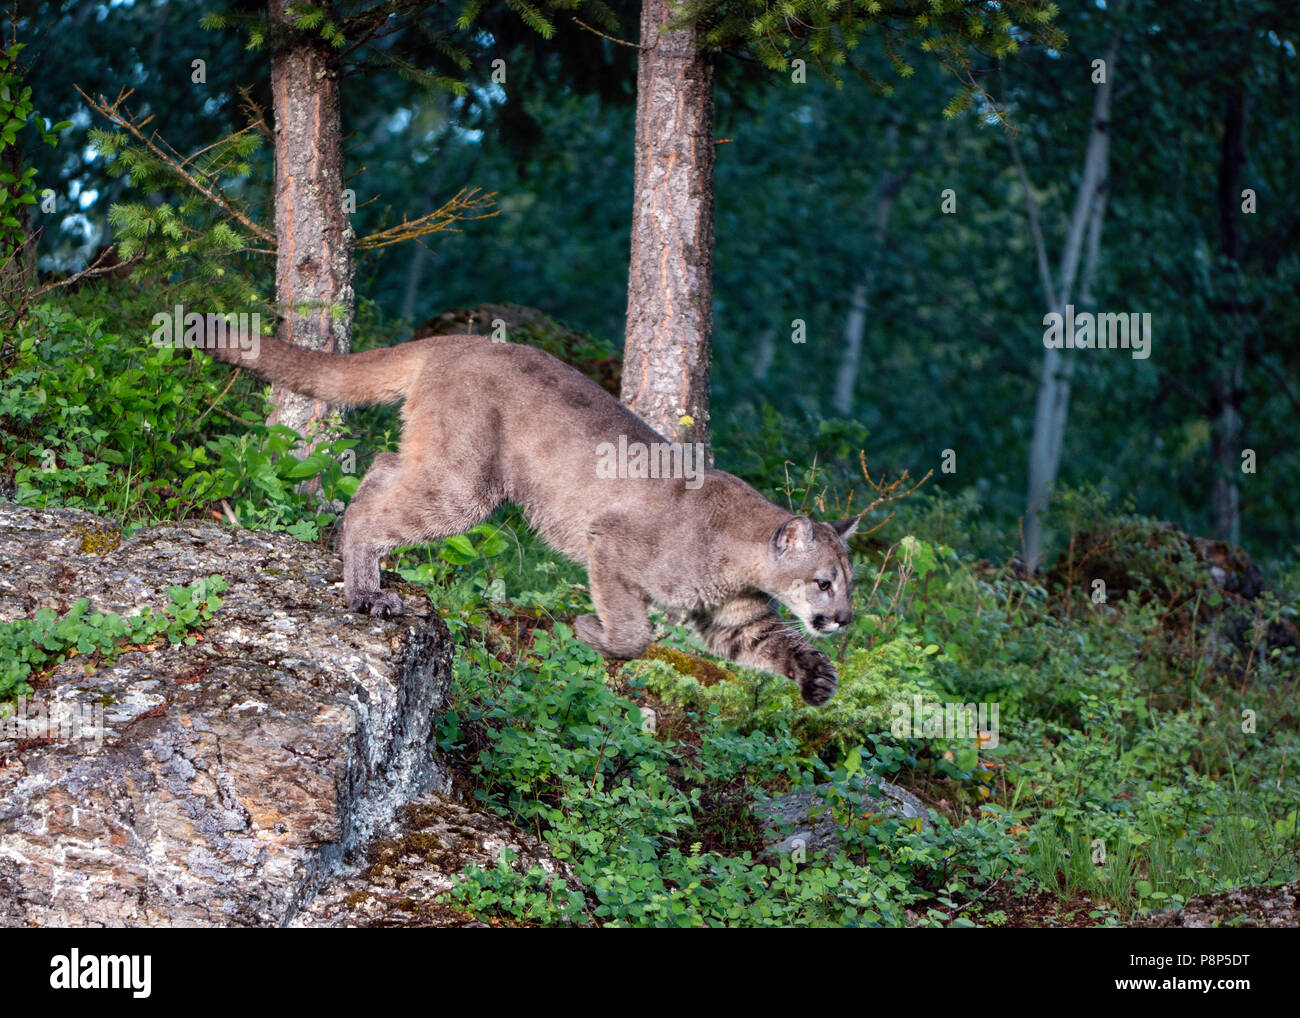 Leaping Mountain Lion - Stock Image